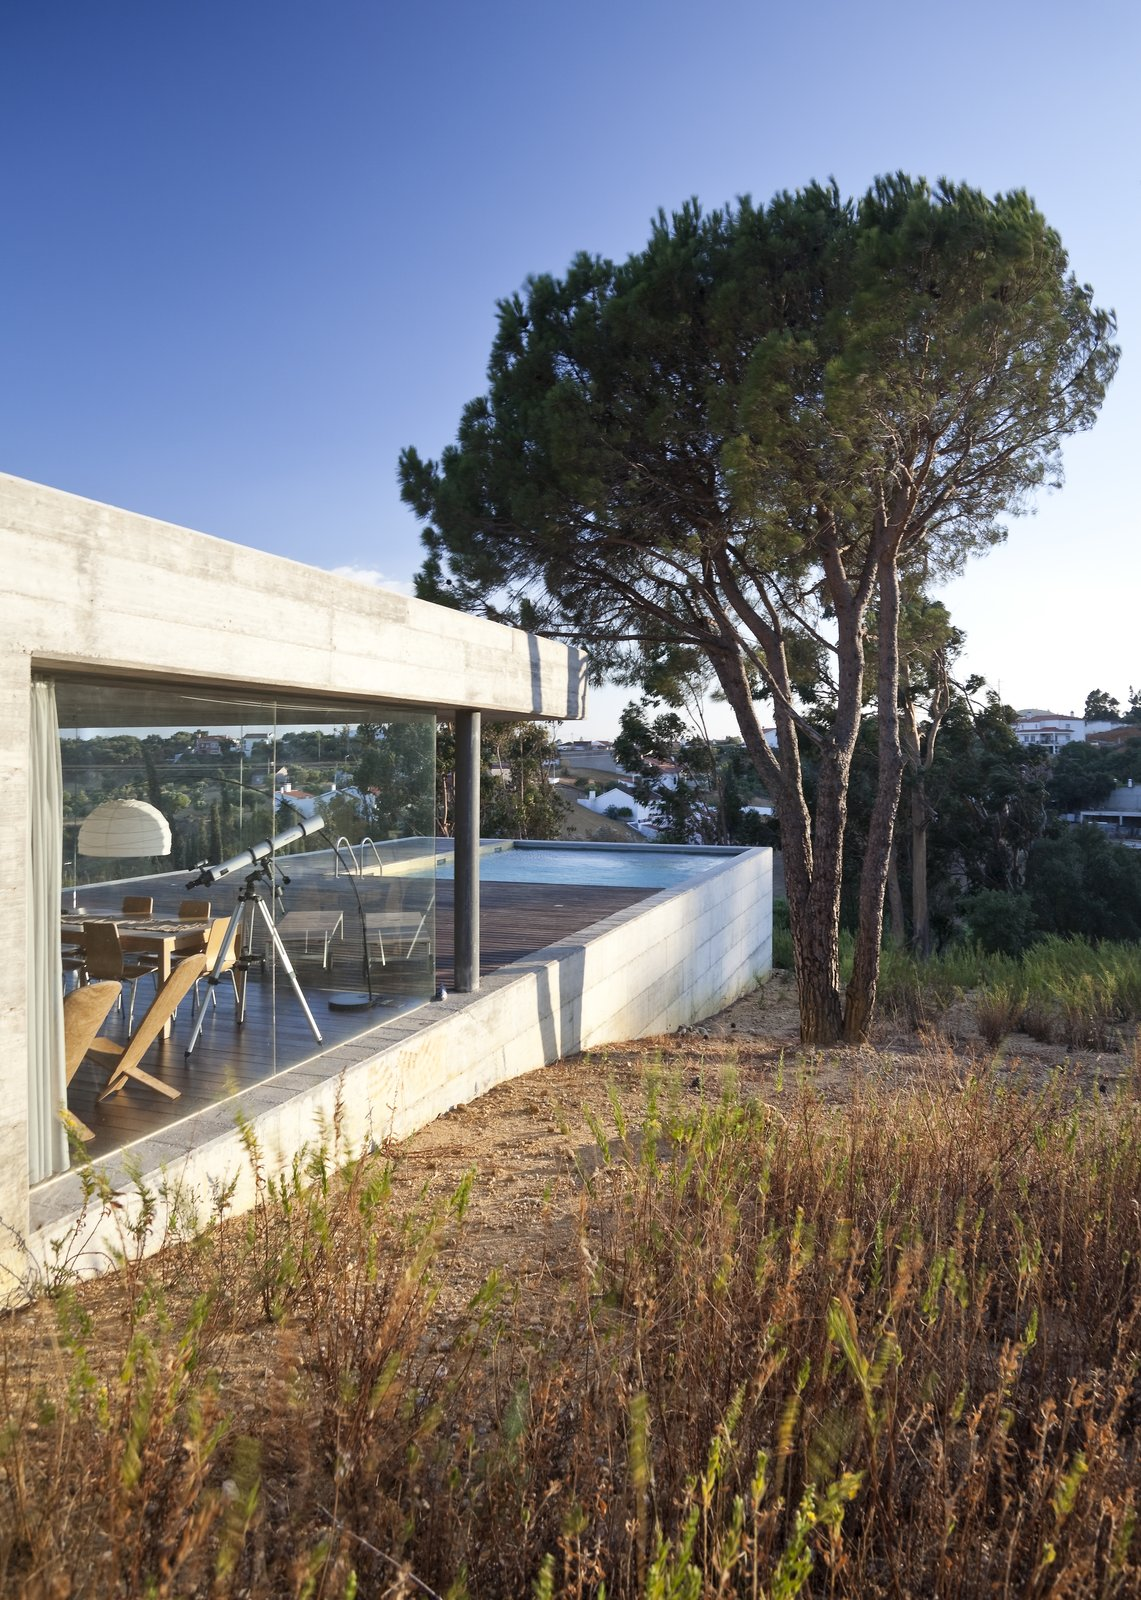 Tagged: Outdoor, Side Yard, Large Patio, Porch, Deck, Grass, Concrete Patio, Porch, Deck, and Wood Patio, Porch, Deck.  House in Pedrogão by Phyd Arquitecura